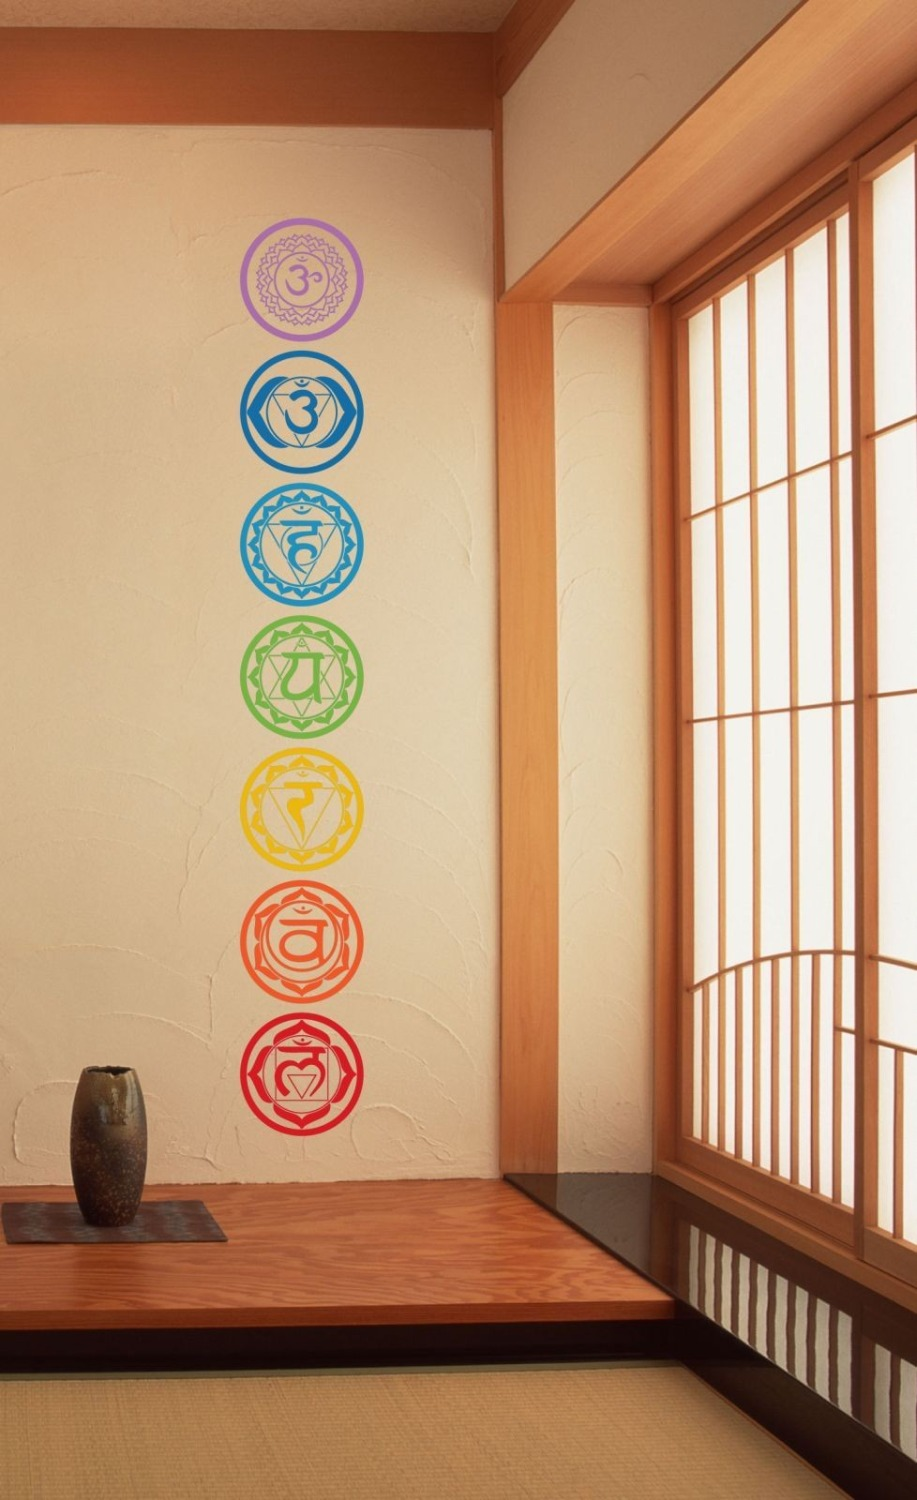 online buy wholesale yoga furniture from china yoga furniture vinilos paredes colorful circle religion wall decals home decor india for buddha ganesh om yoga namaste